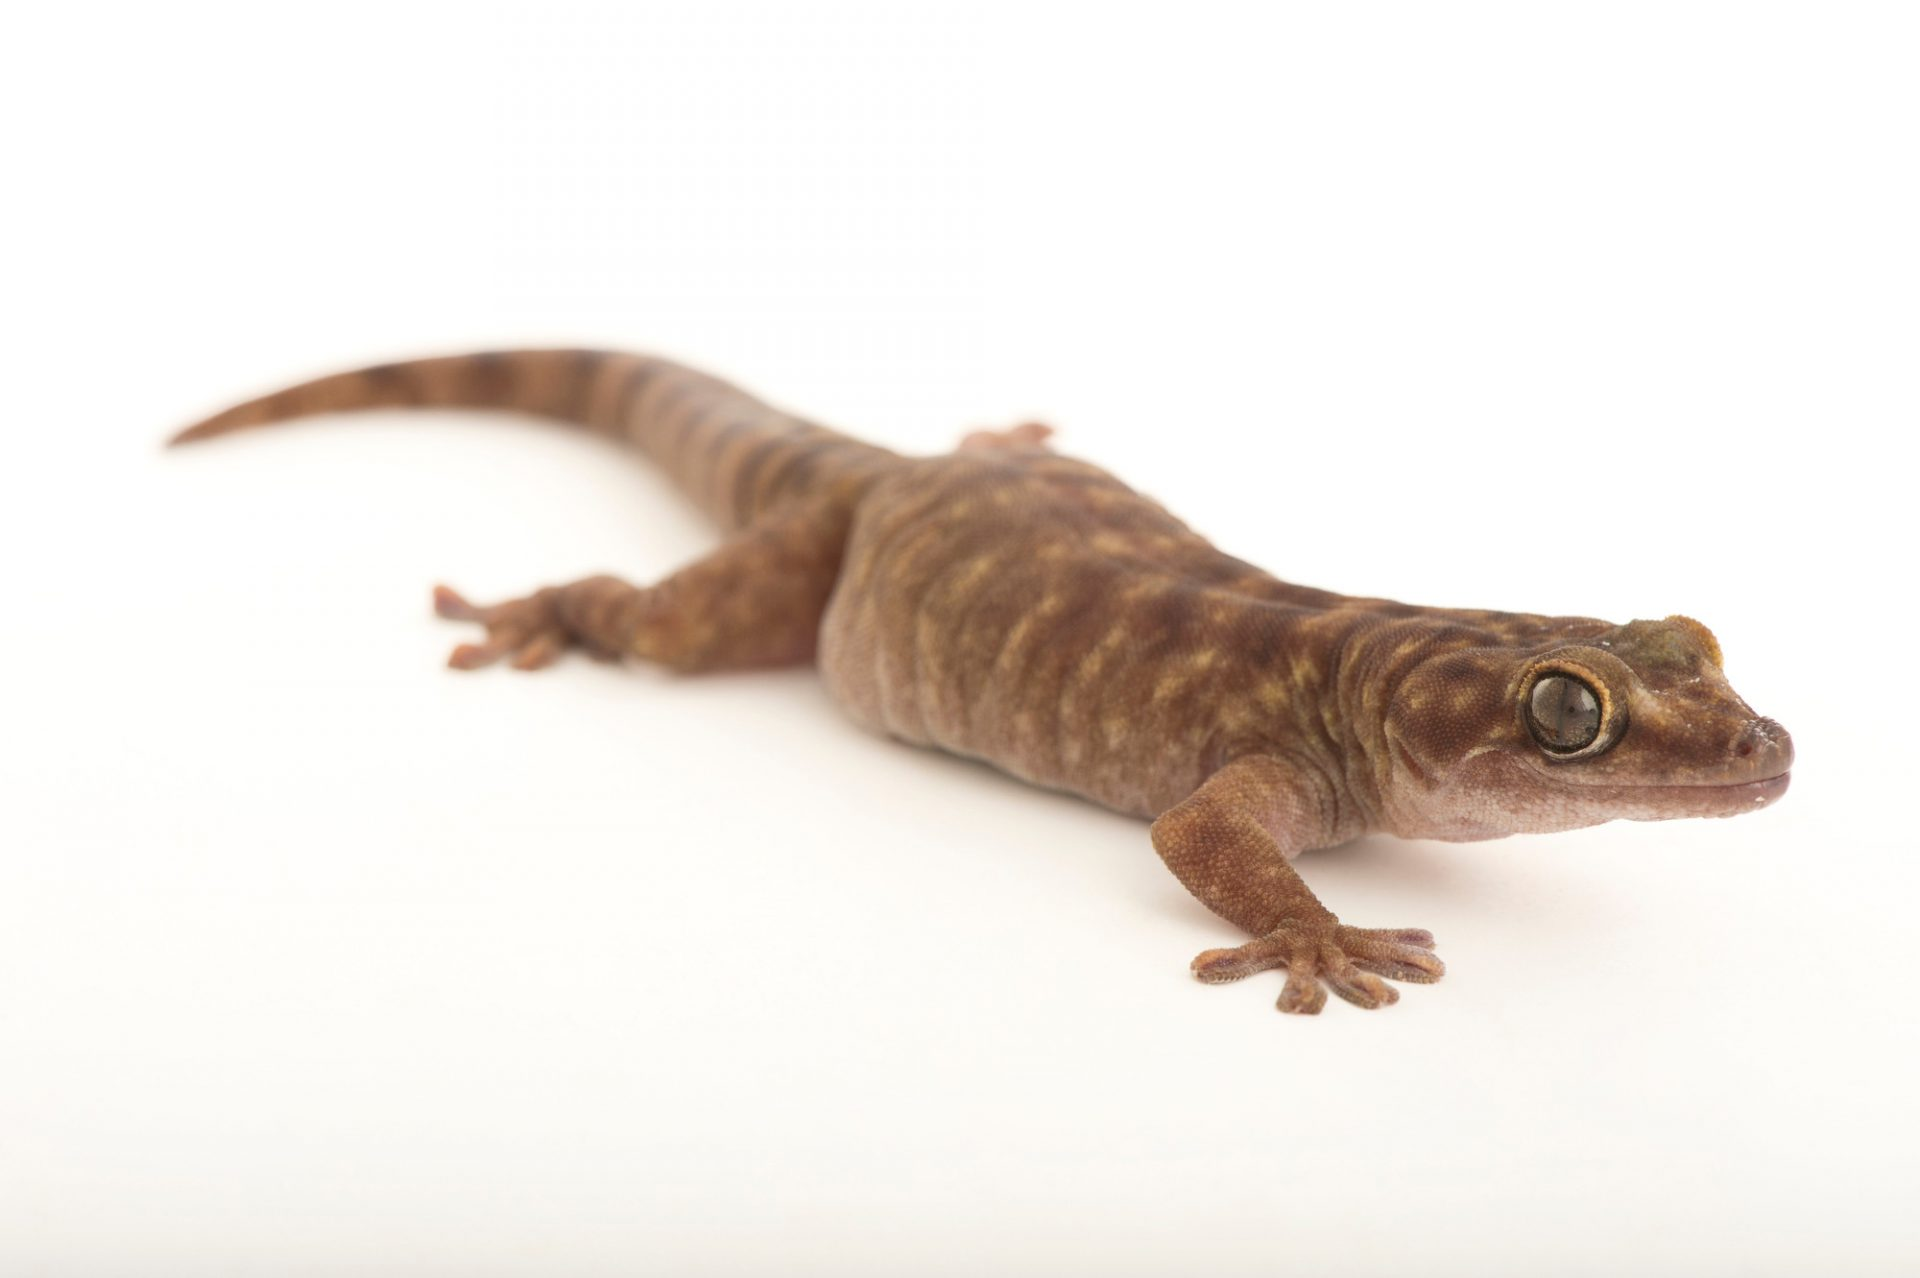 Picture of a giant cave gecko (Pseudothecadactylus lindneri) at the Wild Life Sydney Zoo.